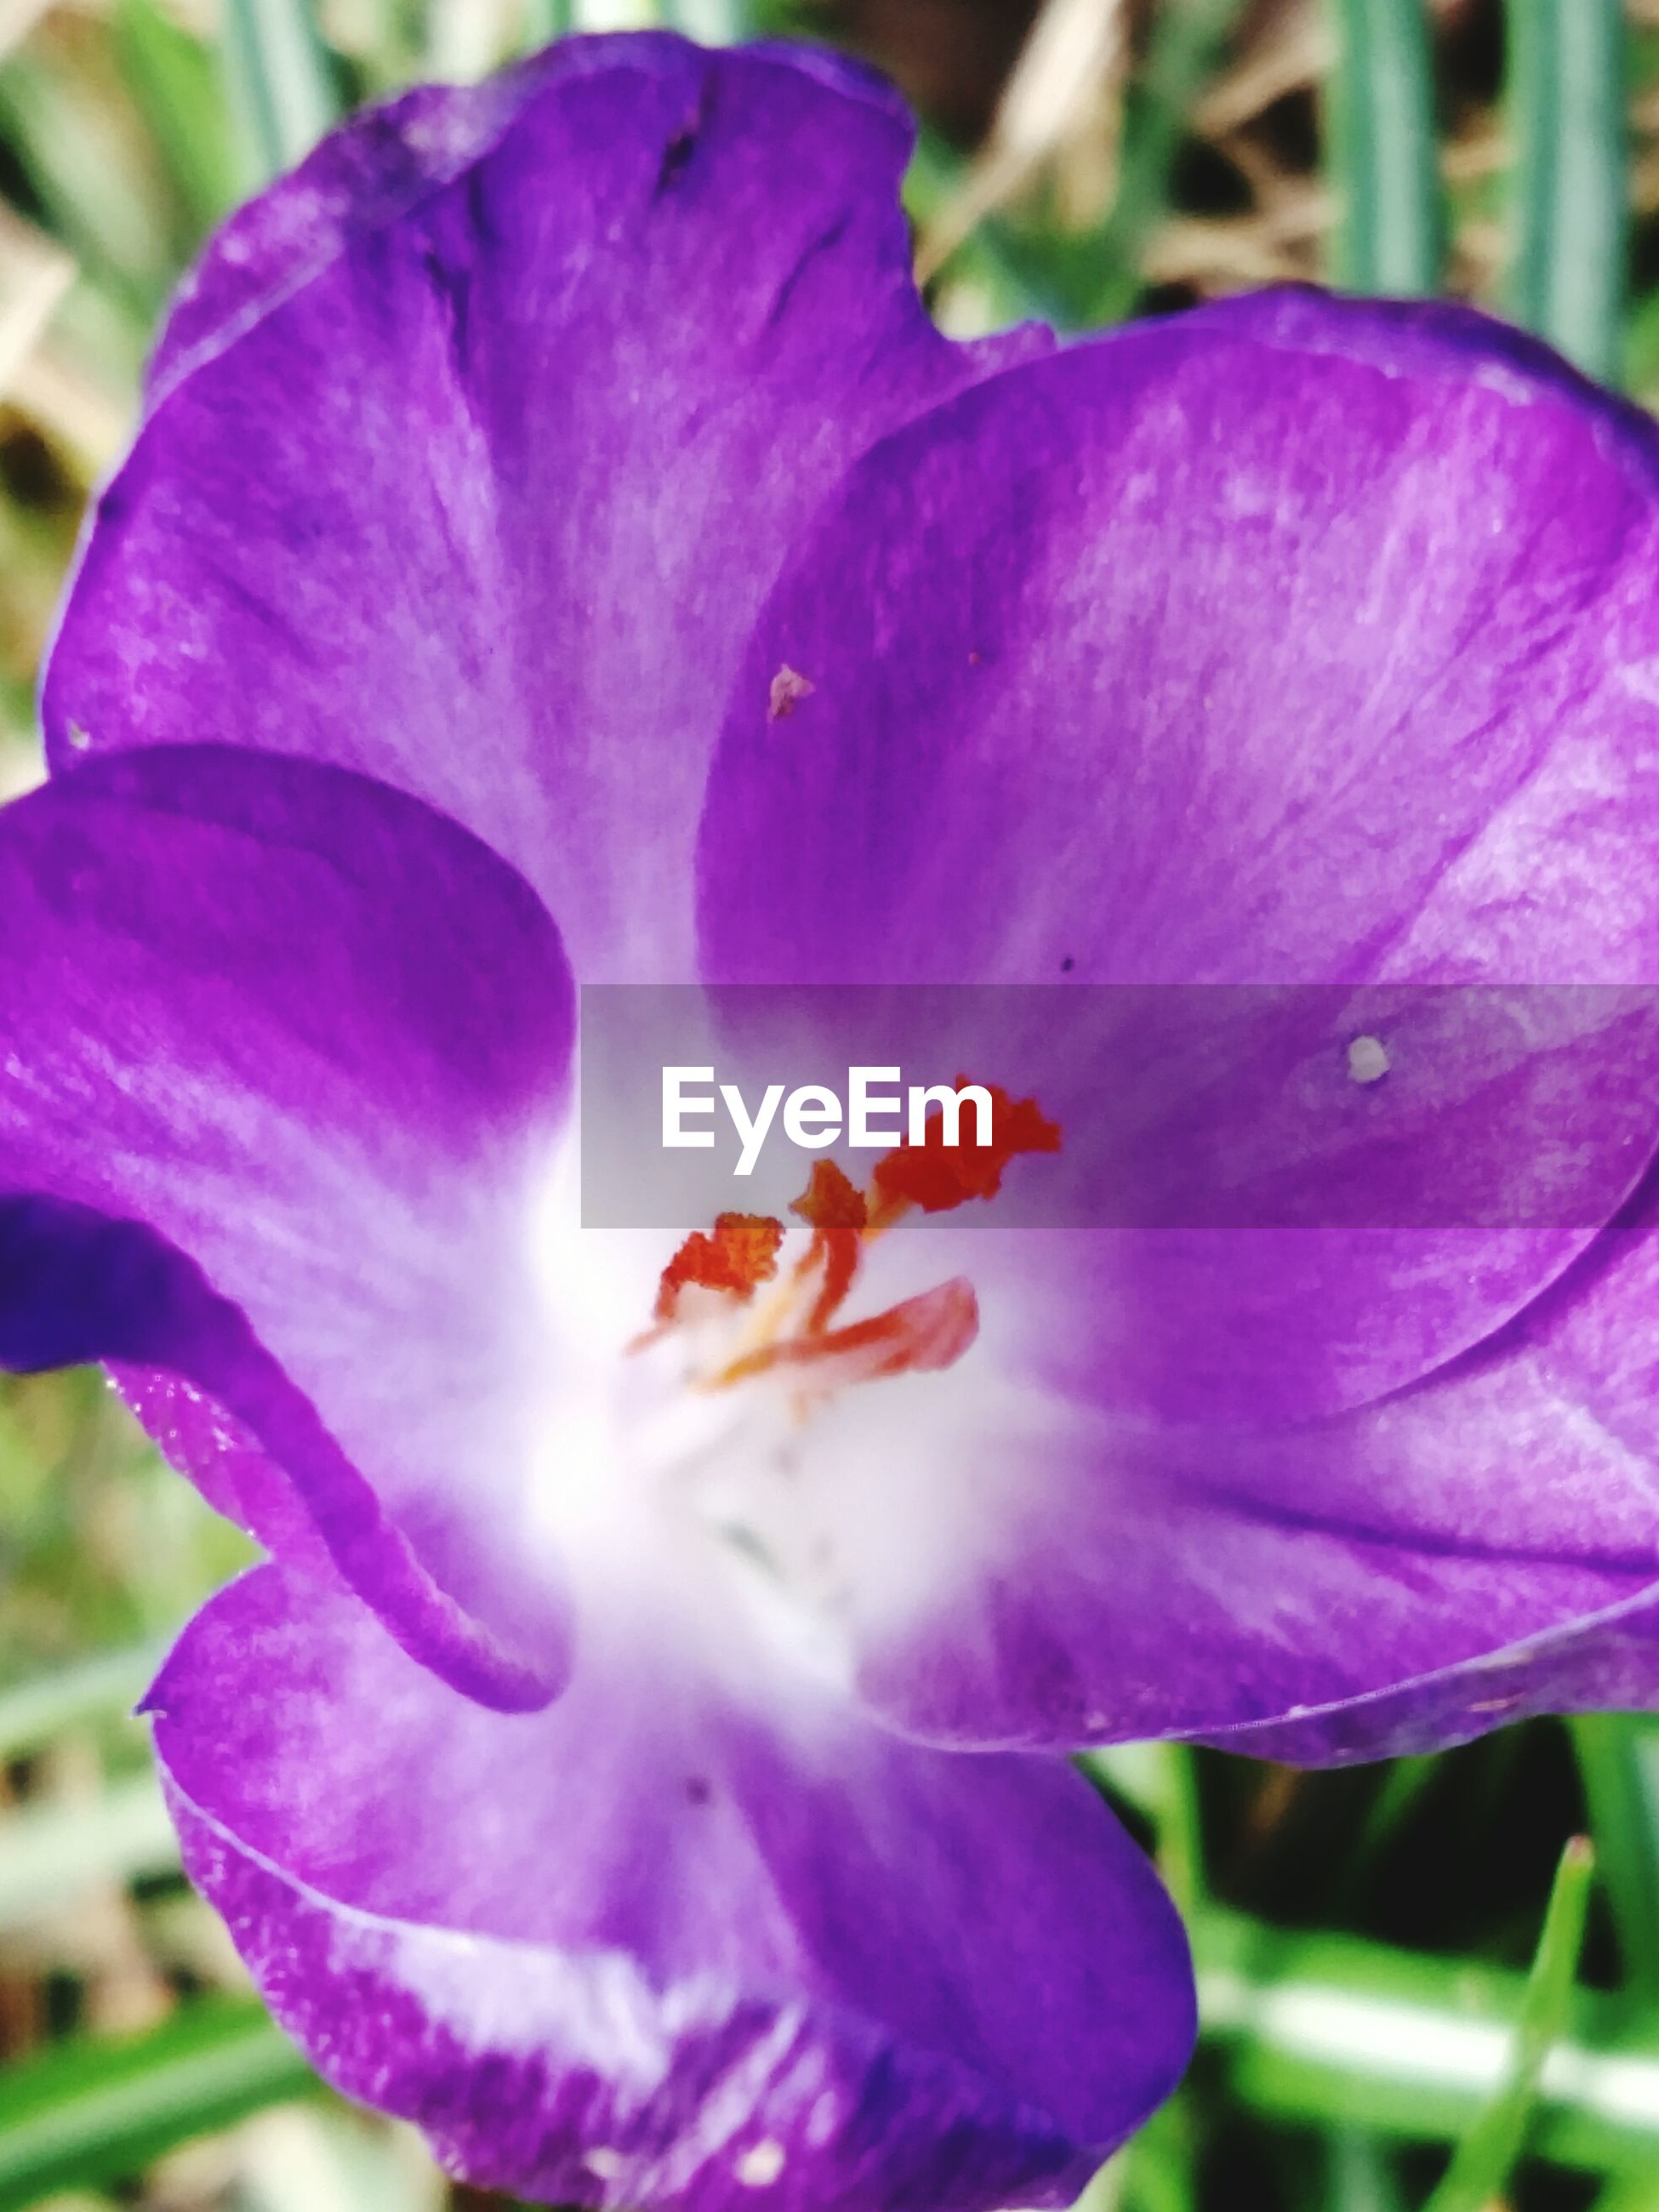 flower, petal, purple, beauty in nature, freshness, fragility, nature, growth, flower head, close-up, no people, stamen, outdoors, day, plant, blooming